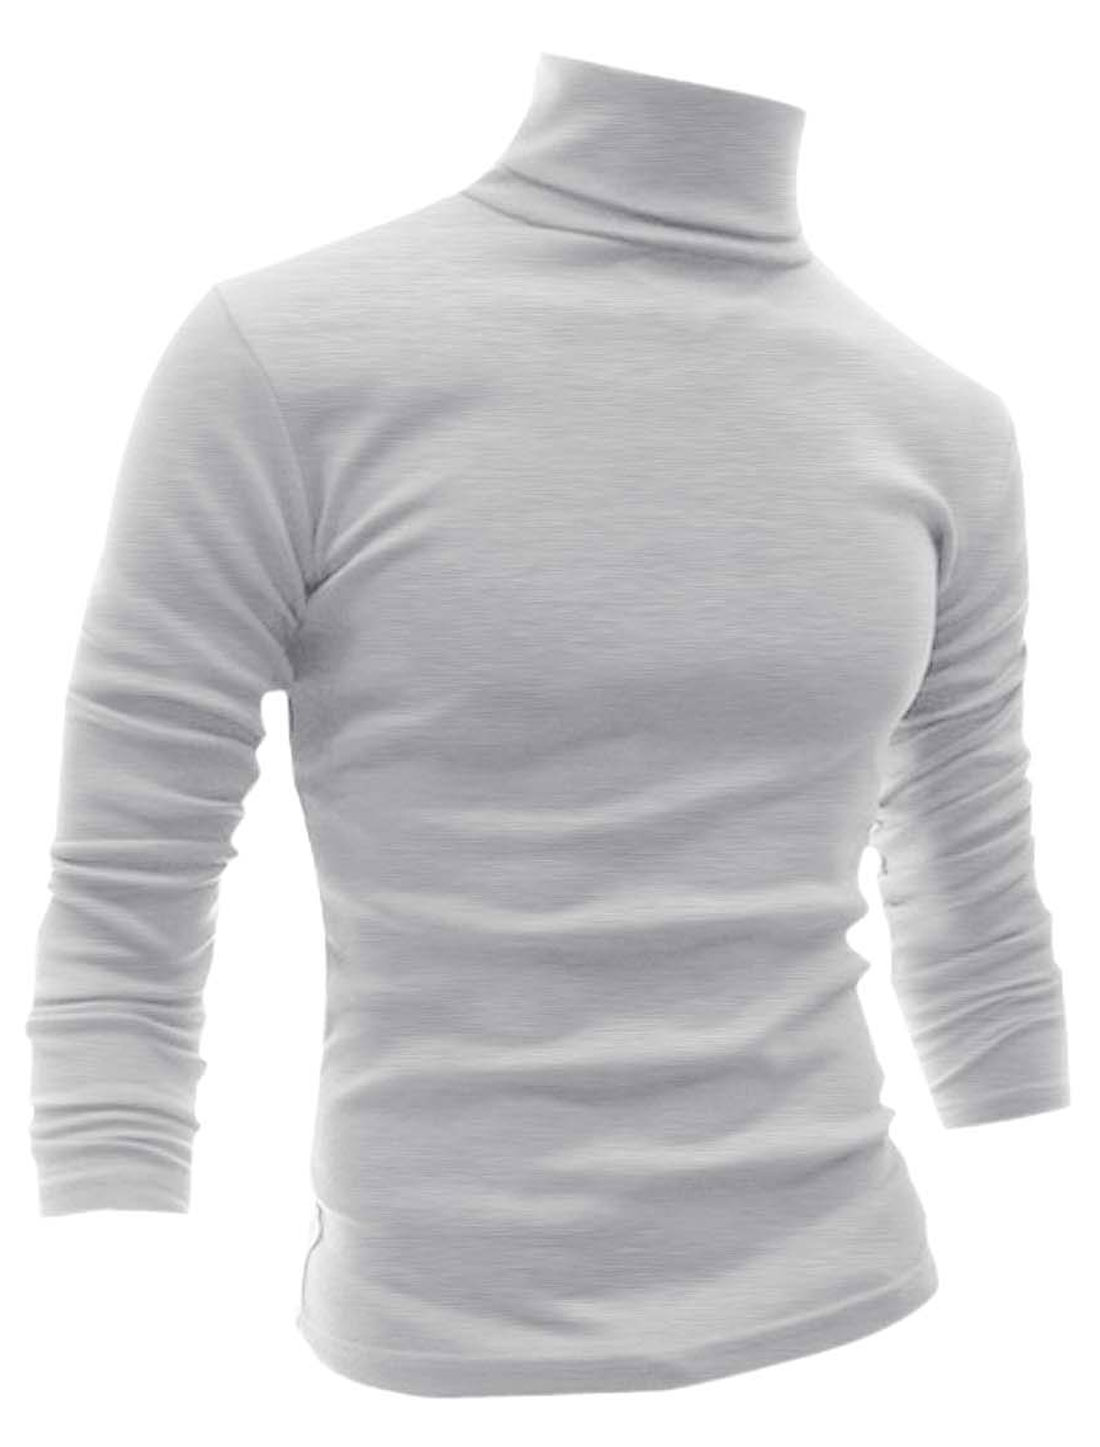 Men Long Sleeves Turtle Neck Slim Fit T-Shirt Light Gray M